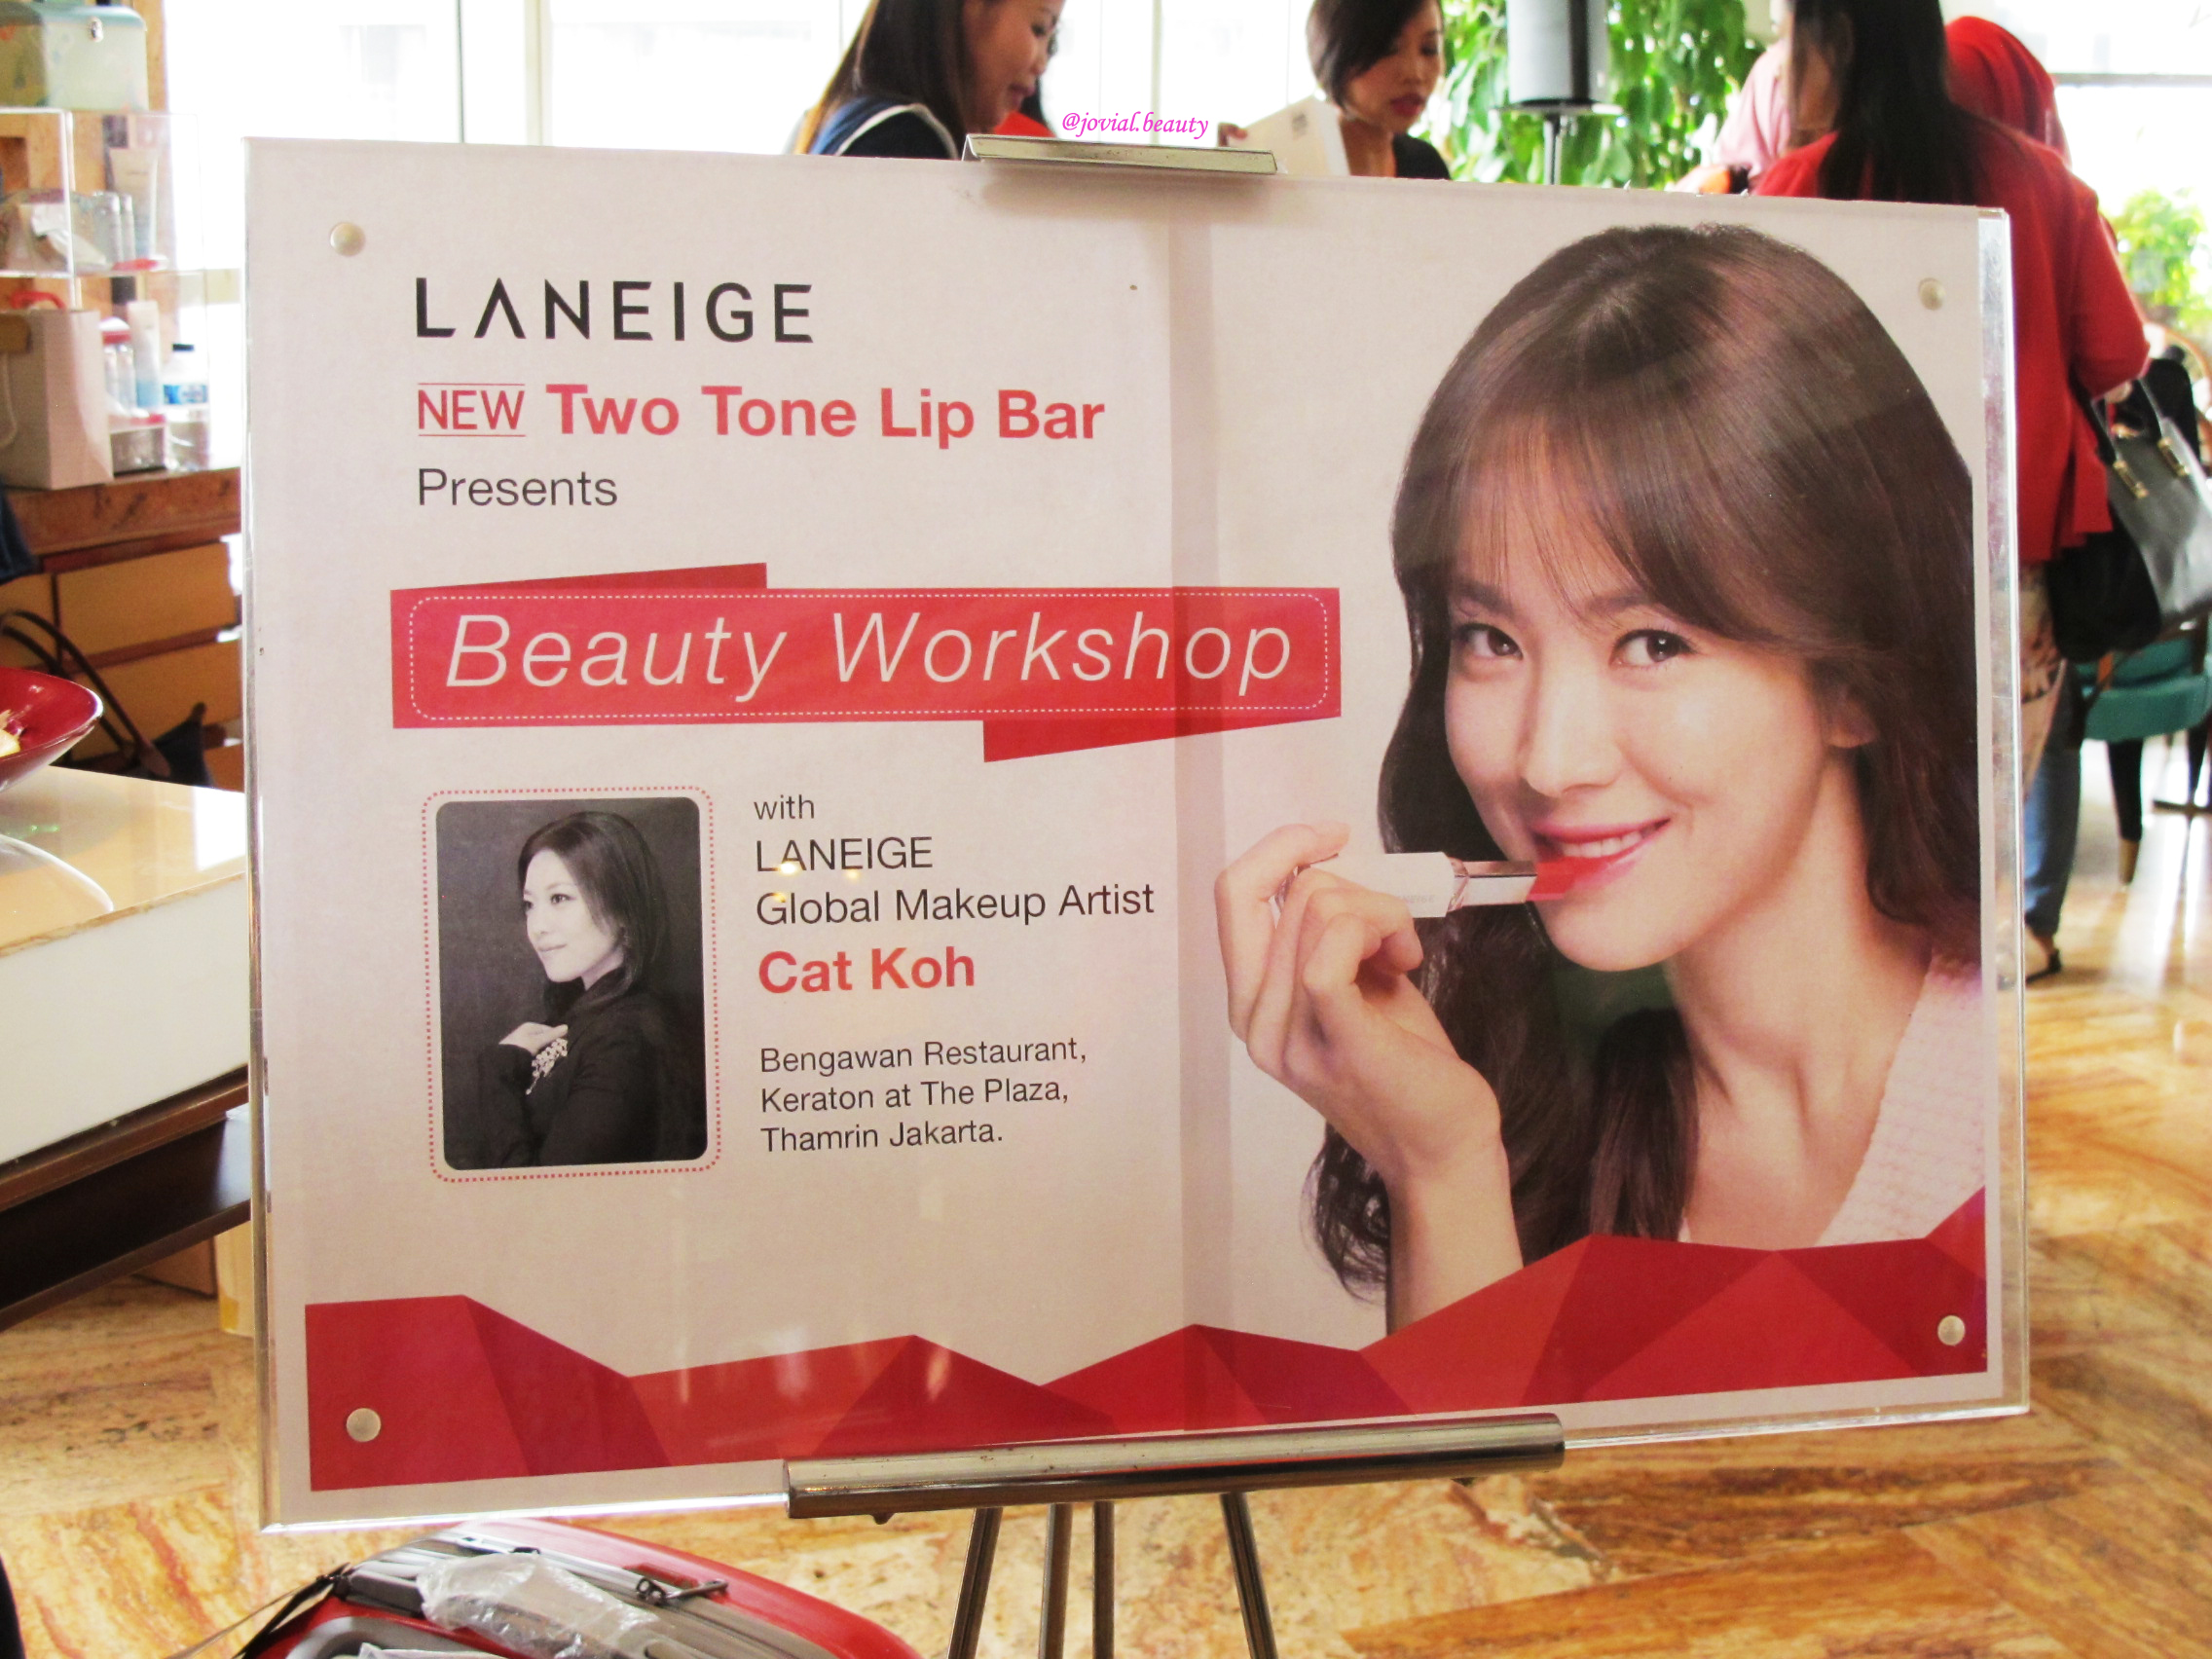 Laneige: Beauty WorkShop with Cat Koh